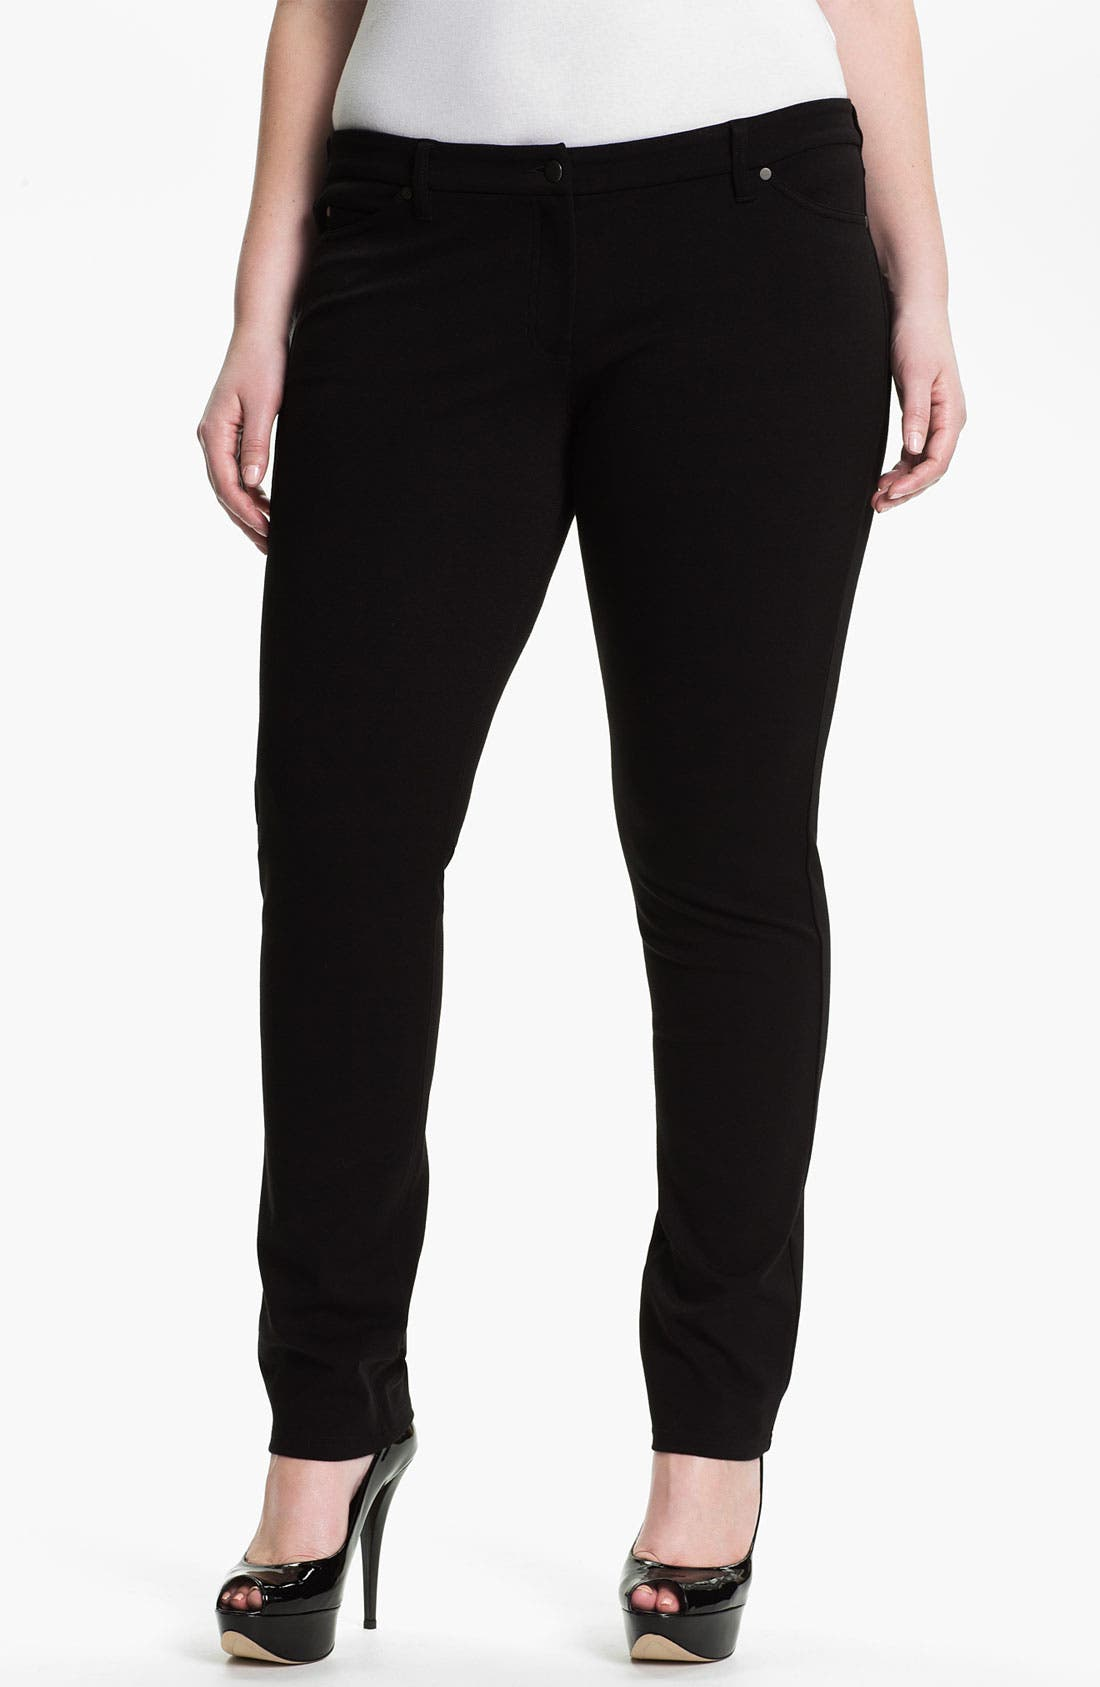 Alternate Image 1 Selected - Eileen Fisher Skinny Ponte Knit Pants (Plus)